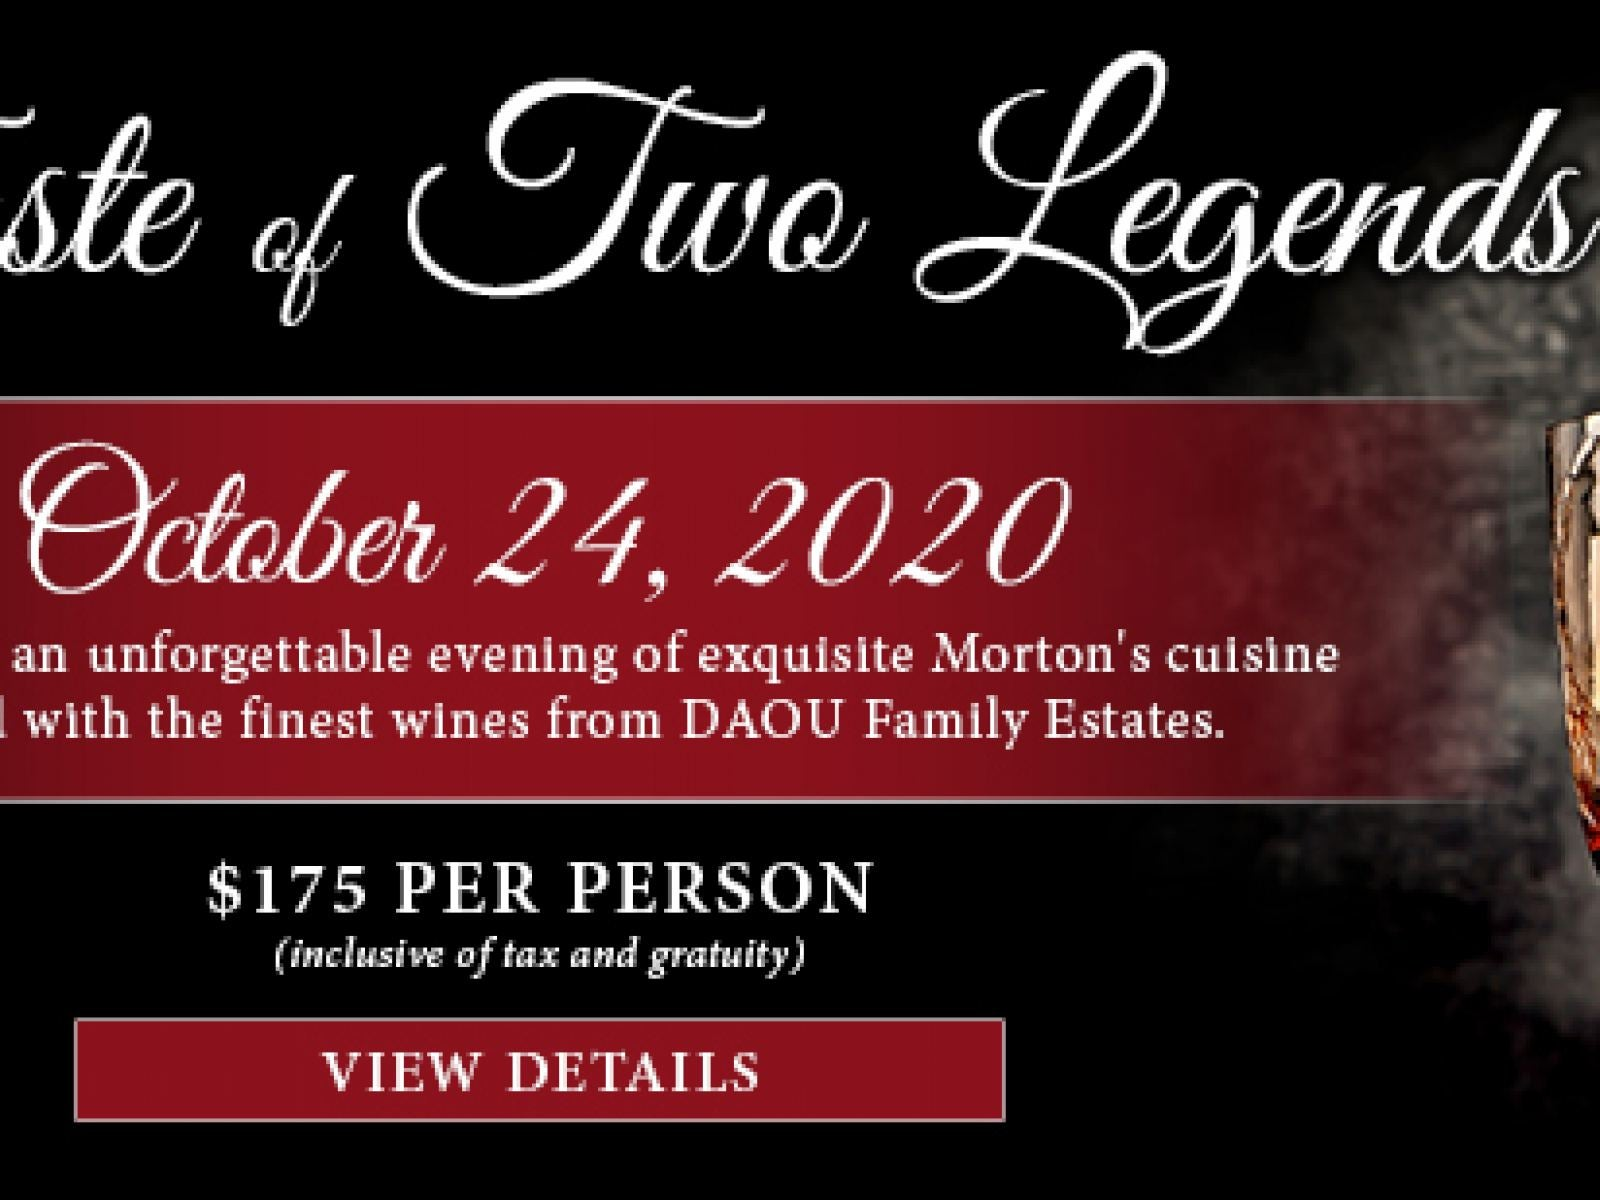 Four Course Dinner and Wine Pairing $175 per person